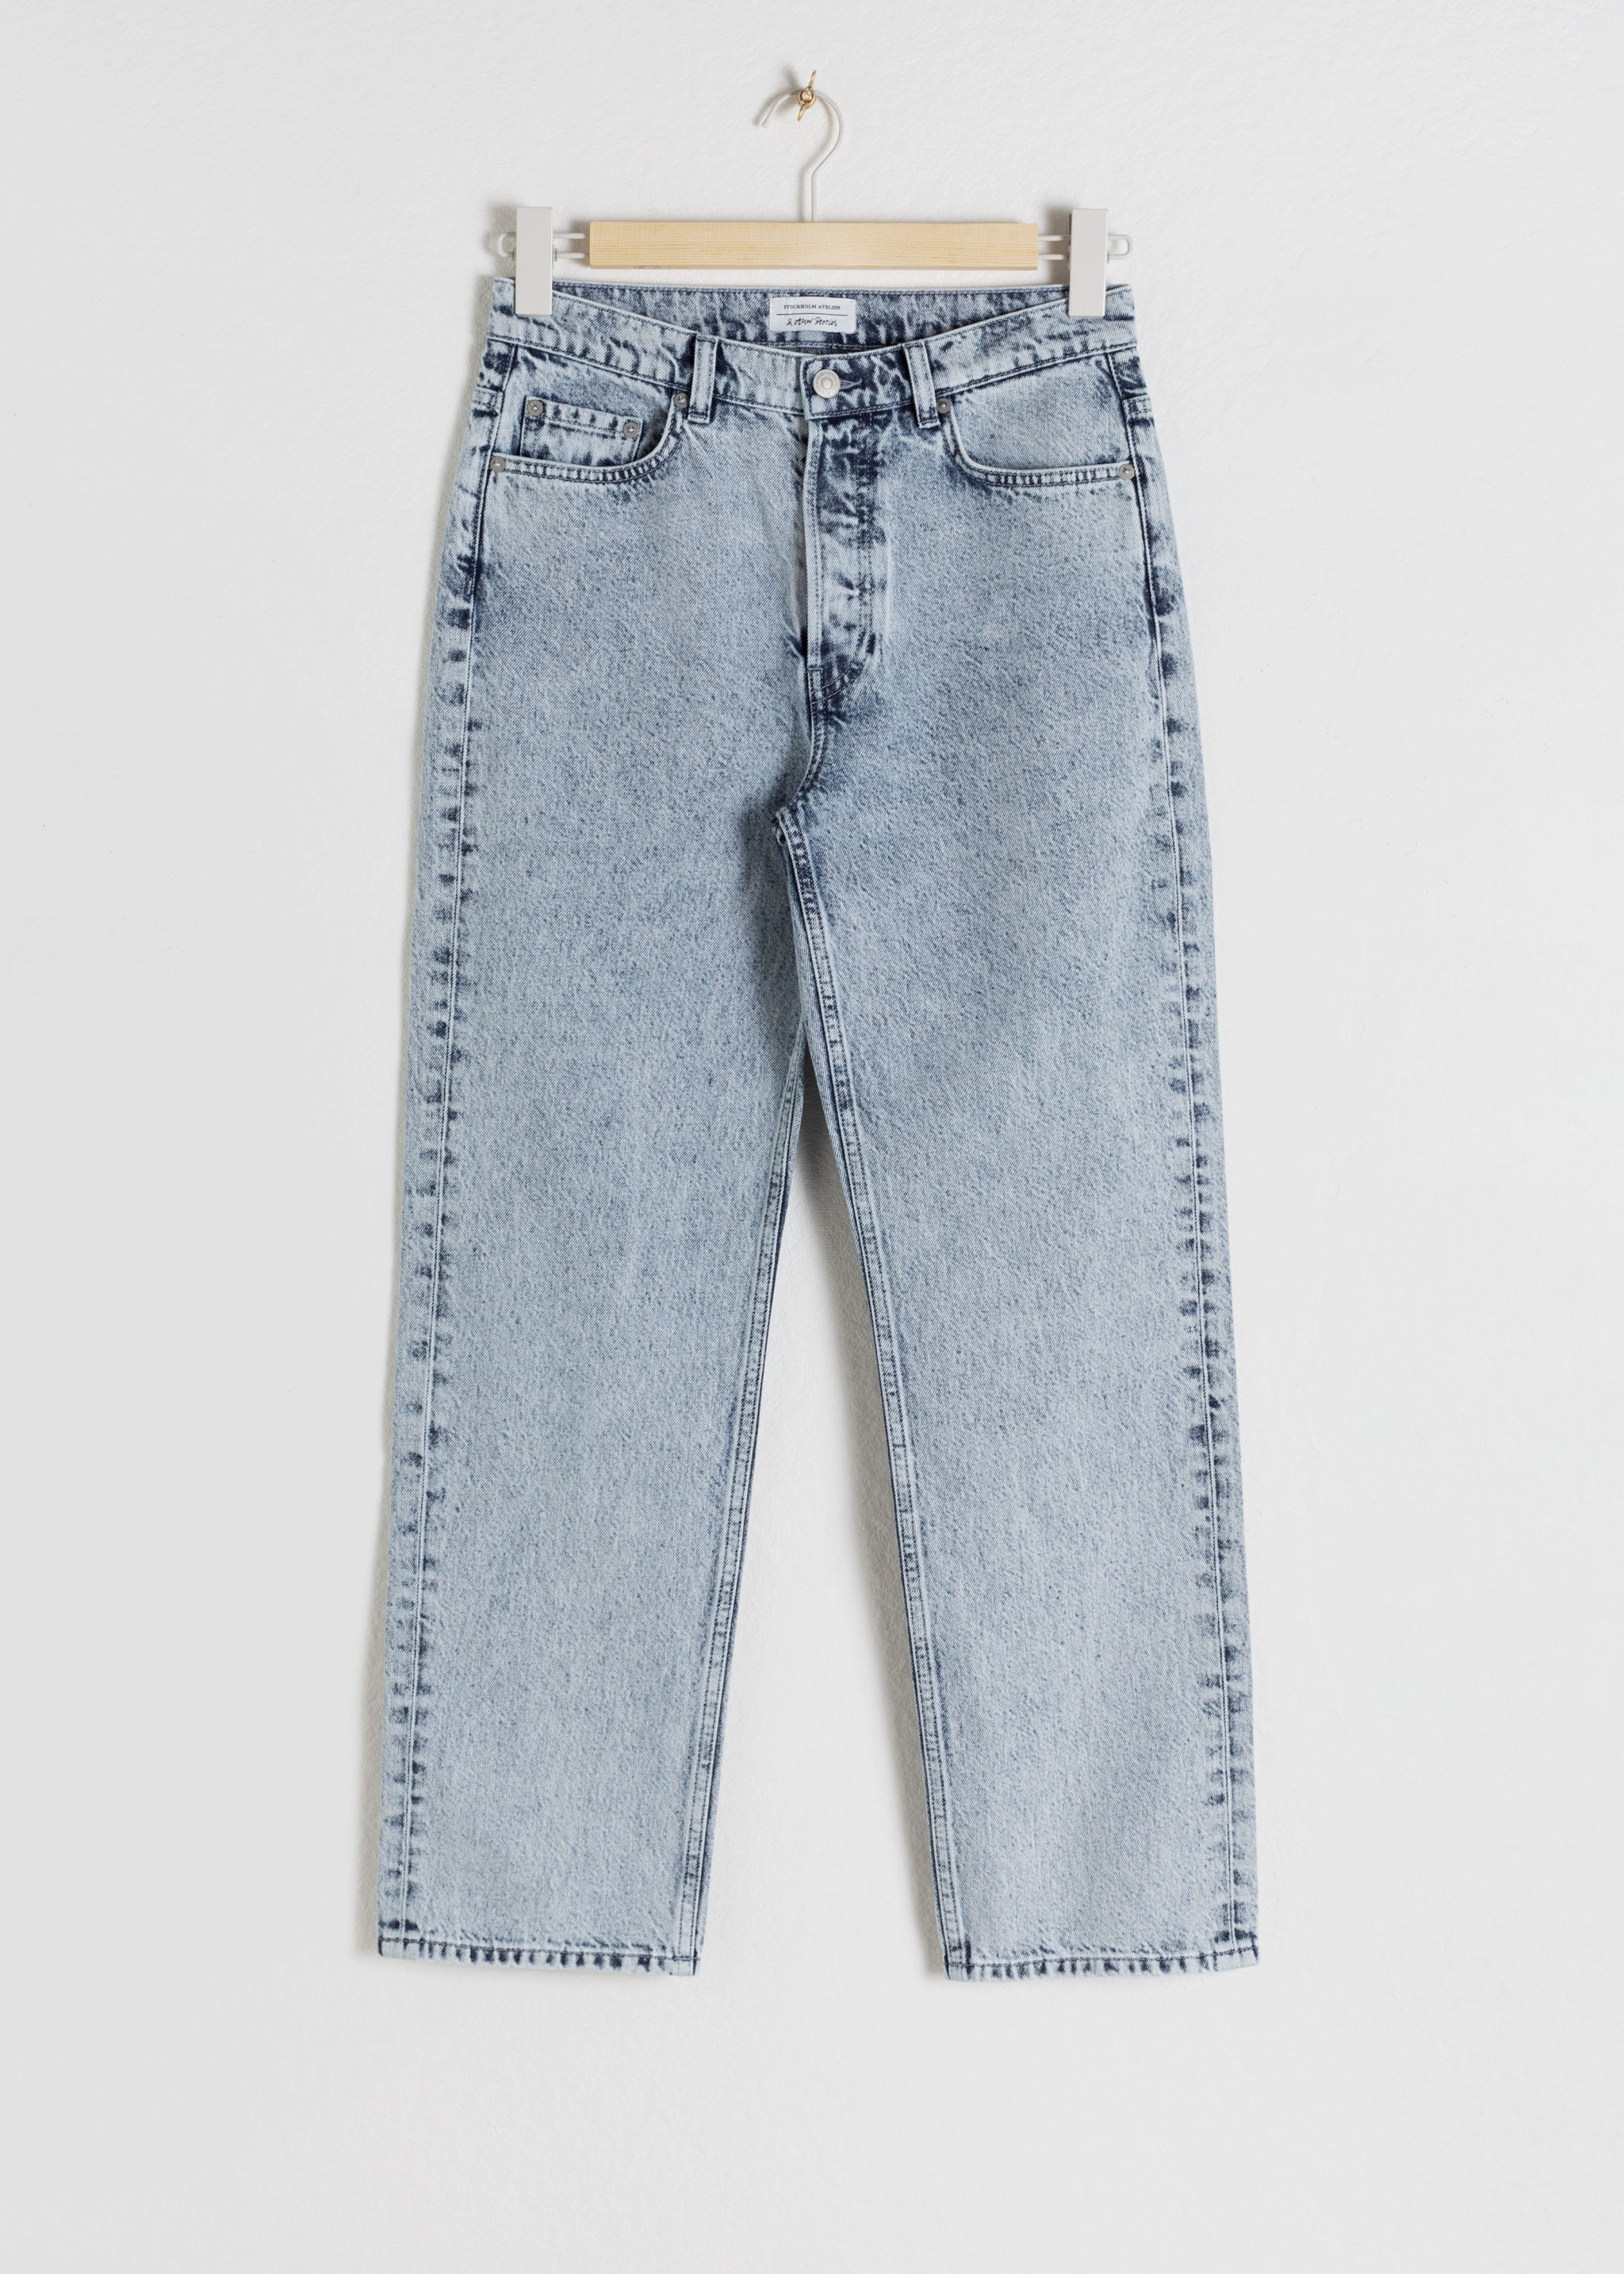 Los jeans de & Other Stories (79 euros).